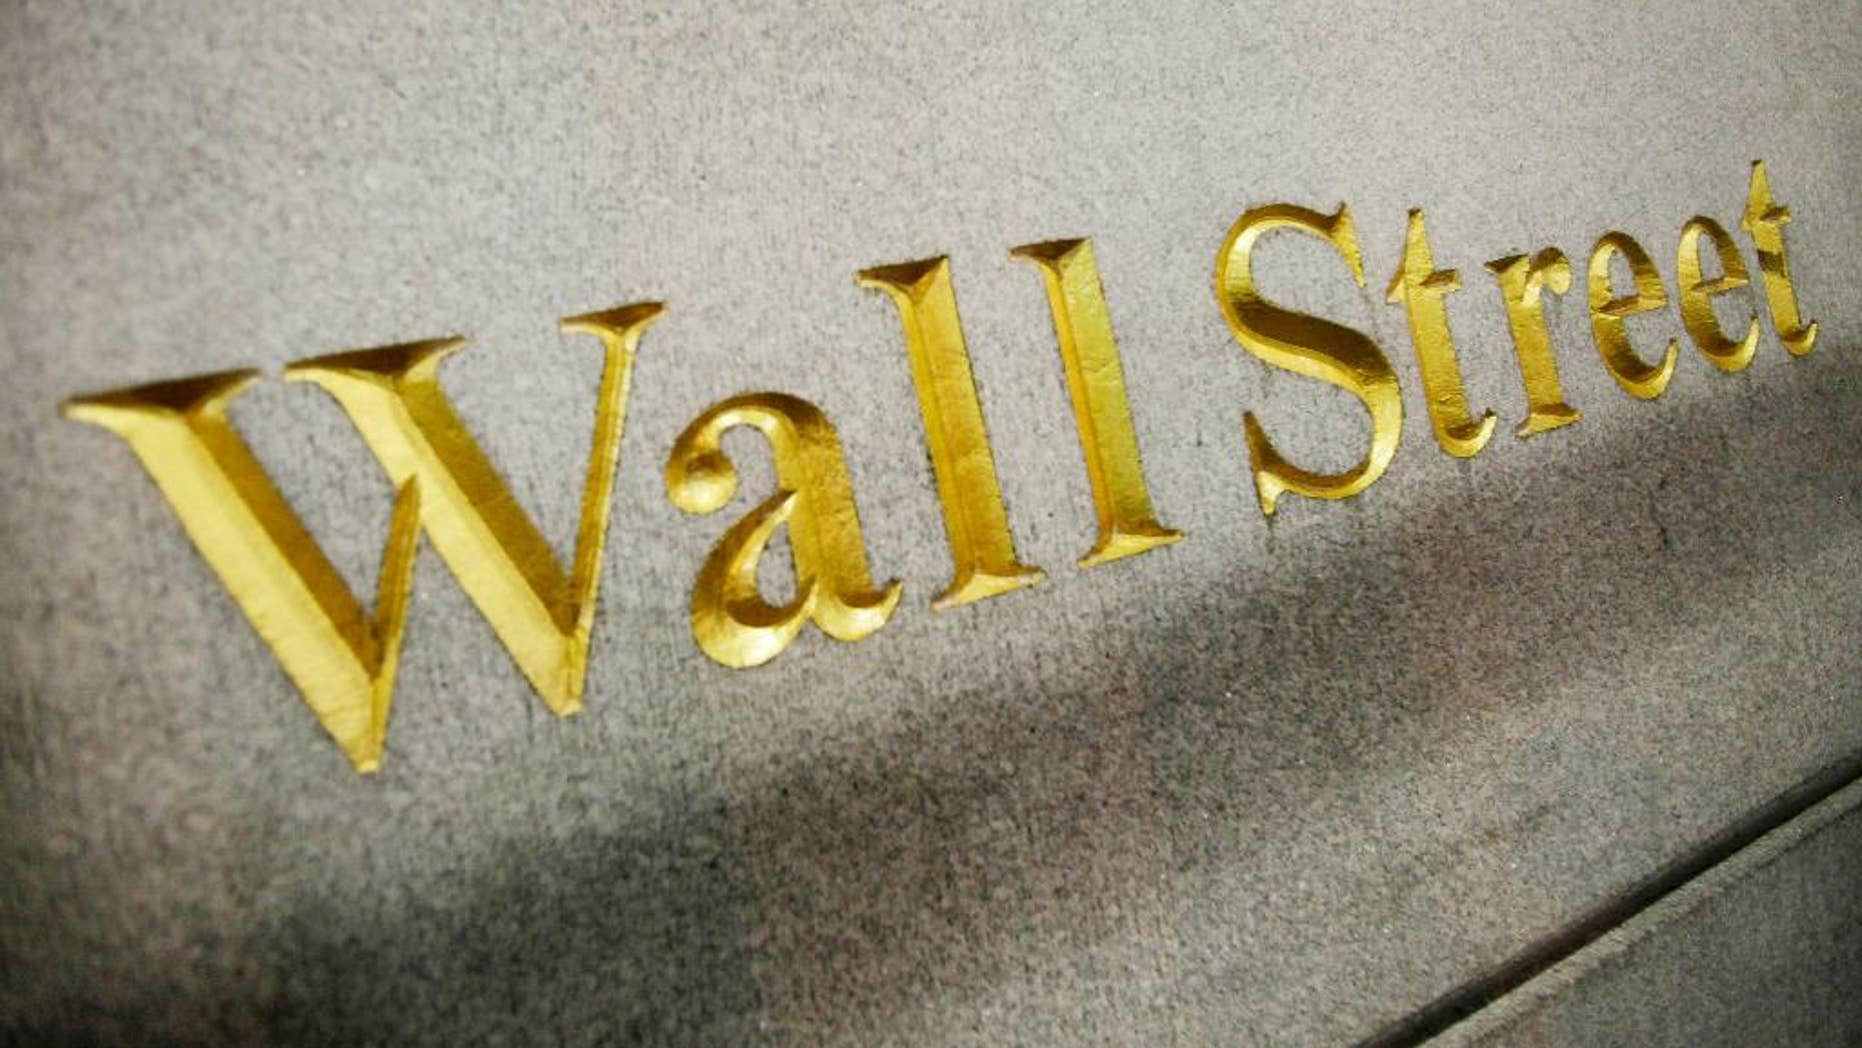 FILE - This Oct. 8. 2014 photo shows a Wall Street address carved into the side of a building in New York. U.S. stock indexes are opening lower Monday, April 6, 2015 following a weak jobs report late last week. (AP Photo/Mark Lennihan, File)